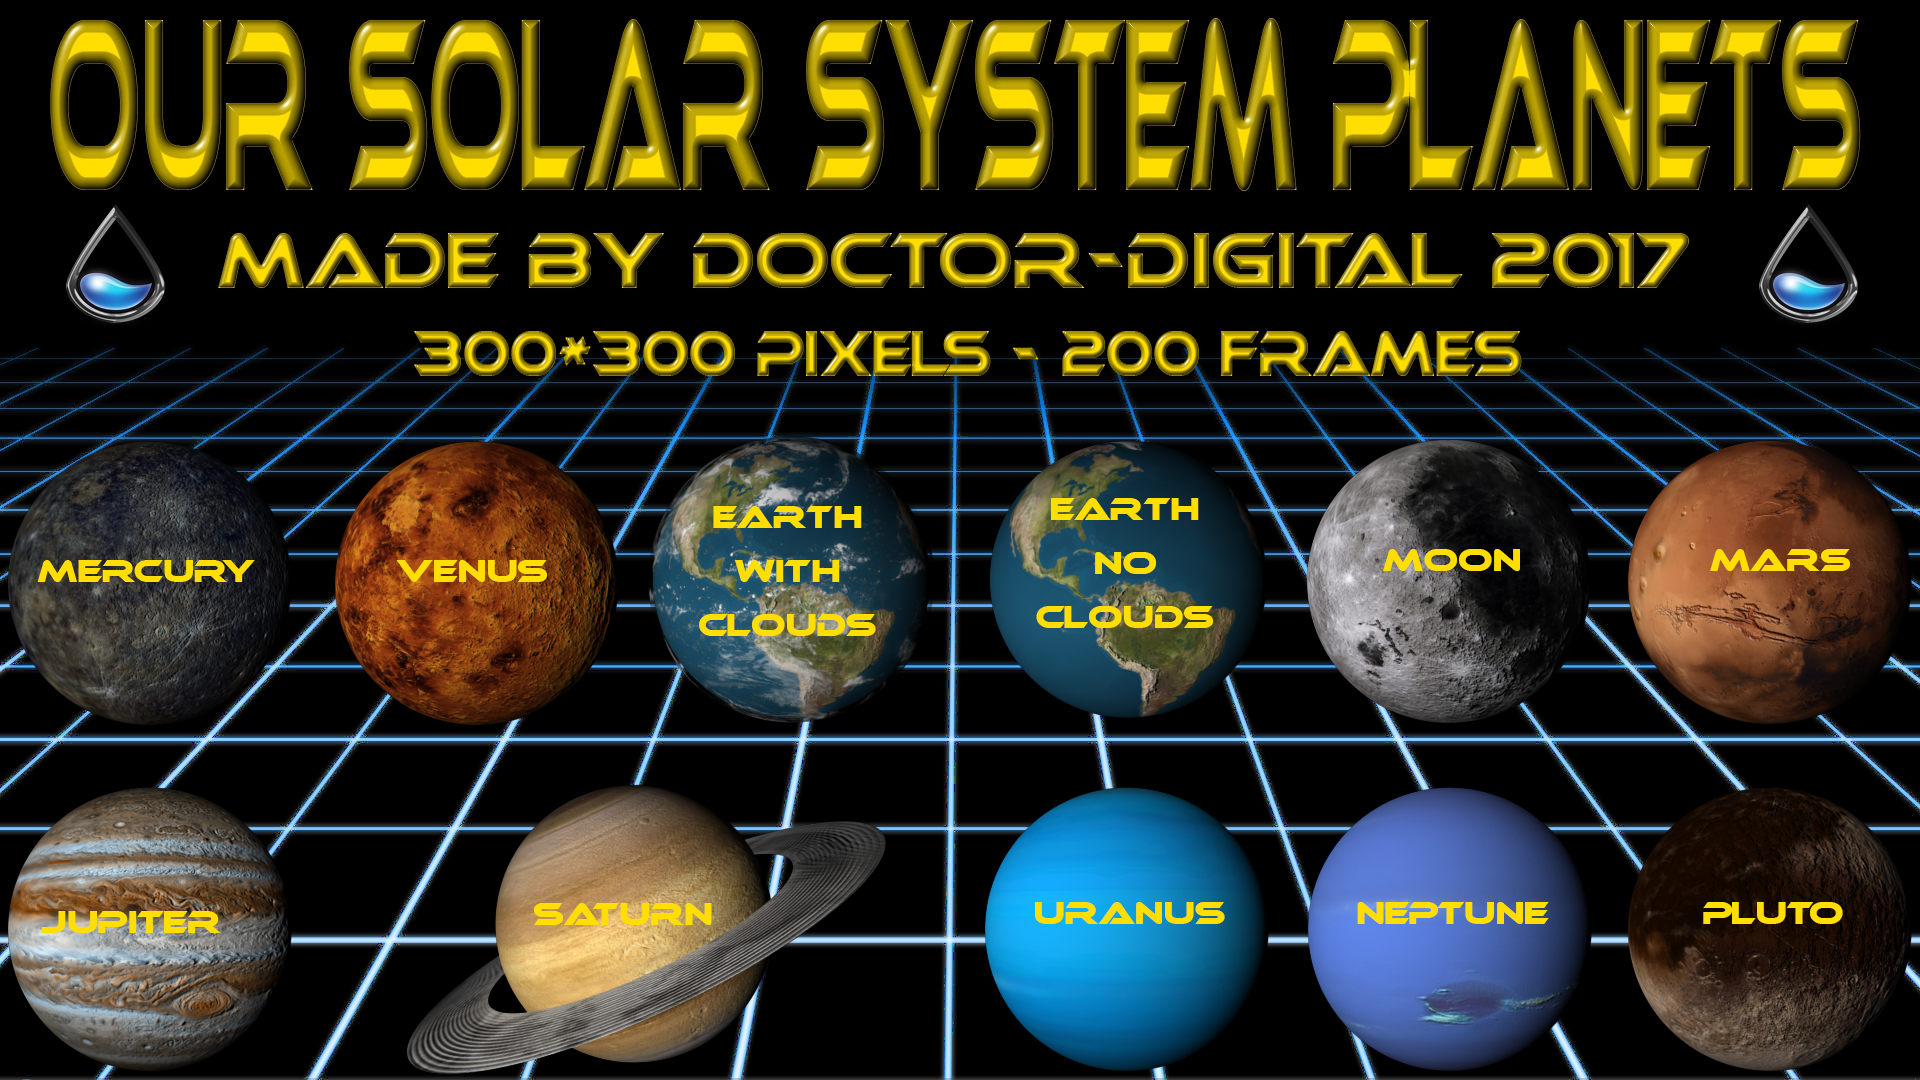 Our Solar System Planets - Part 1